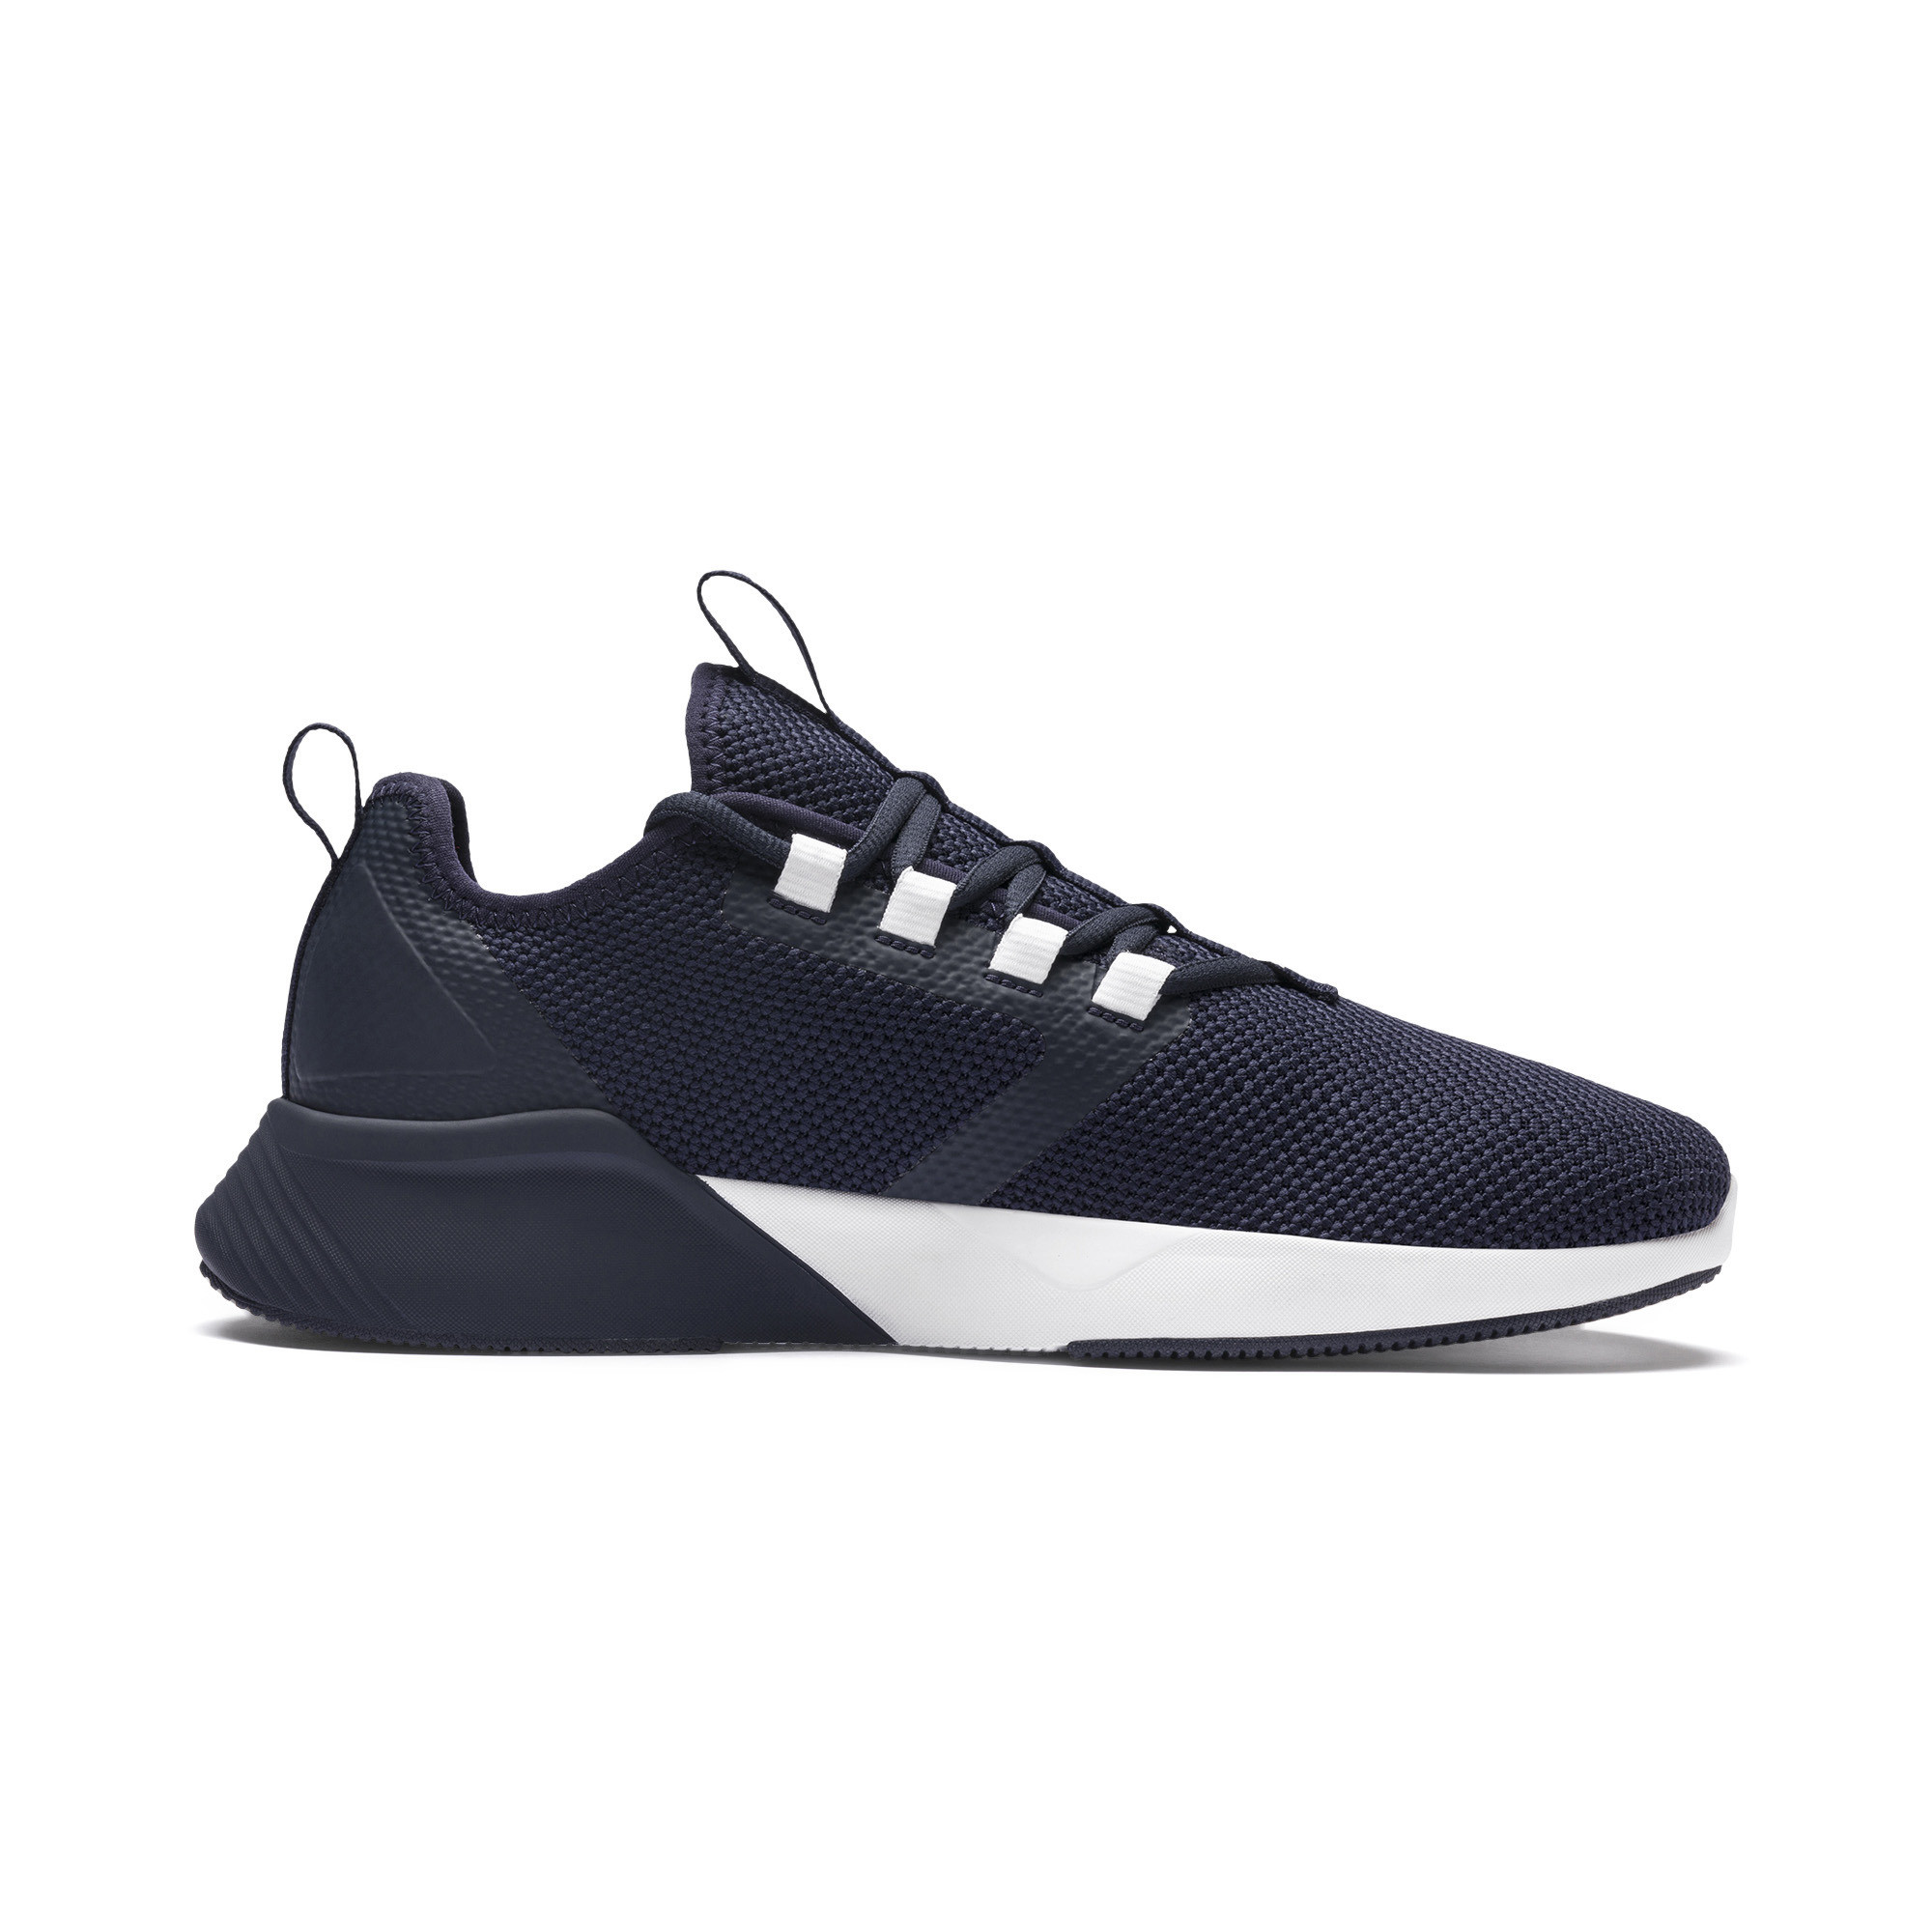 PUMA-Men-039-s-Retaliate-Training-Shoes thumbnail 14